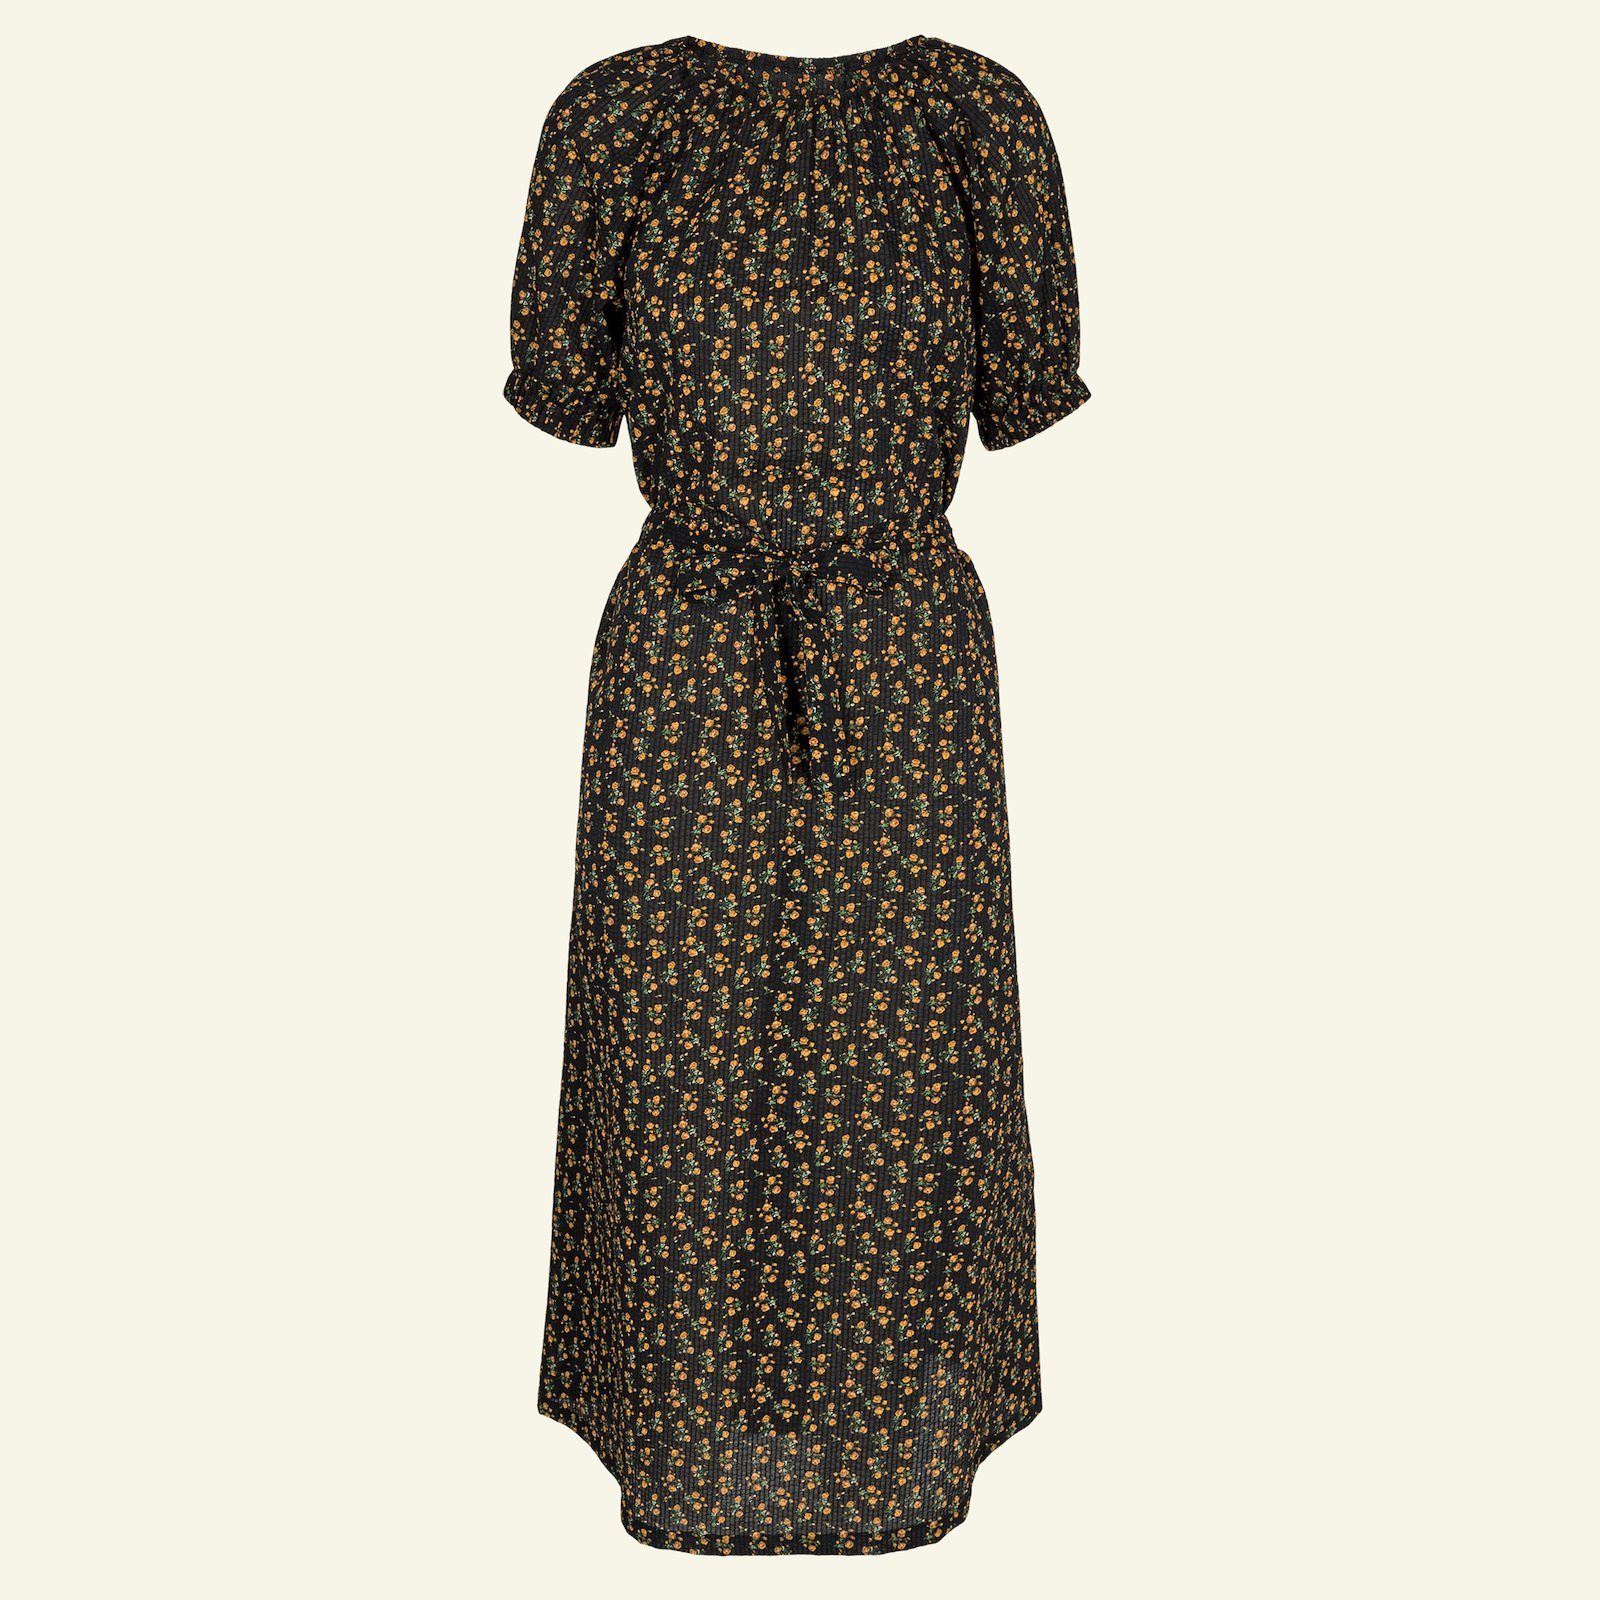 Dress with belt and blouse, 44/16 p23167_580057_sskit